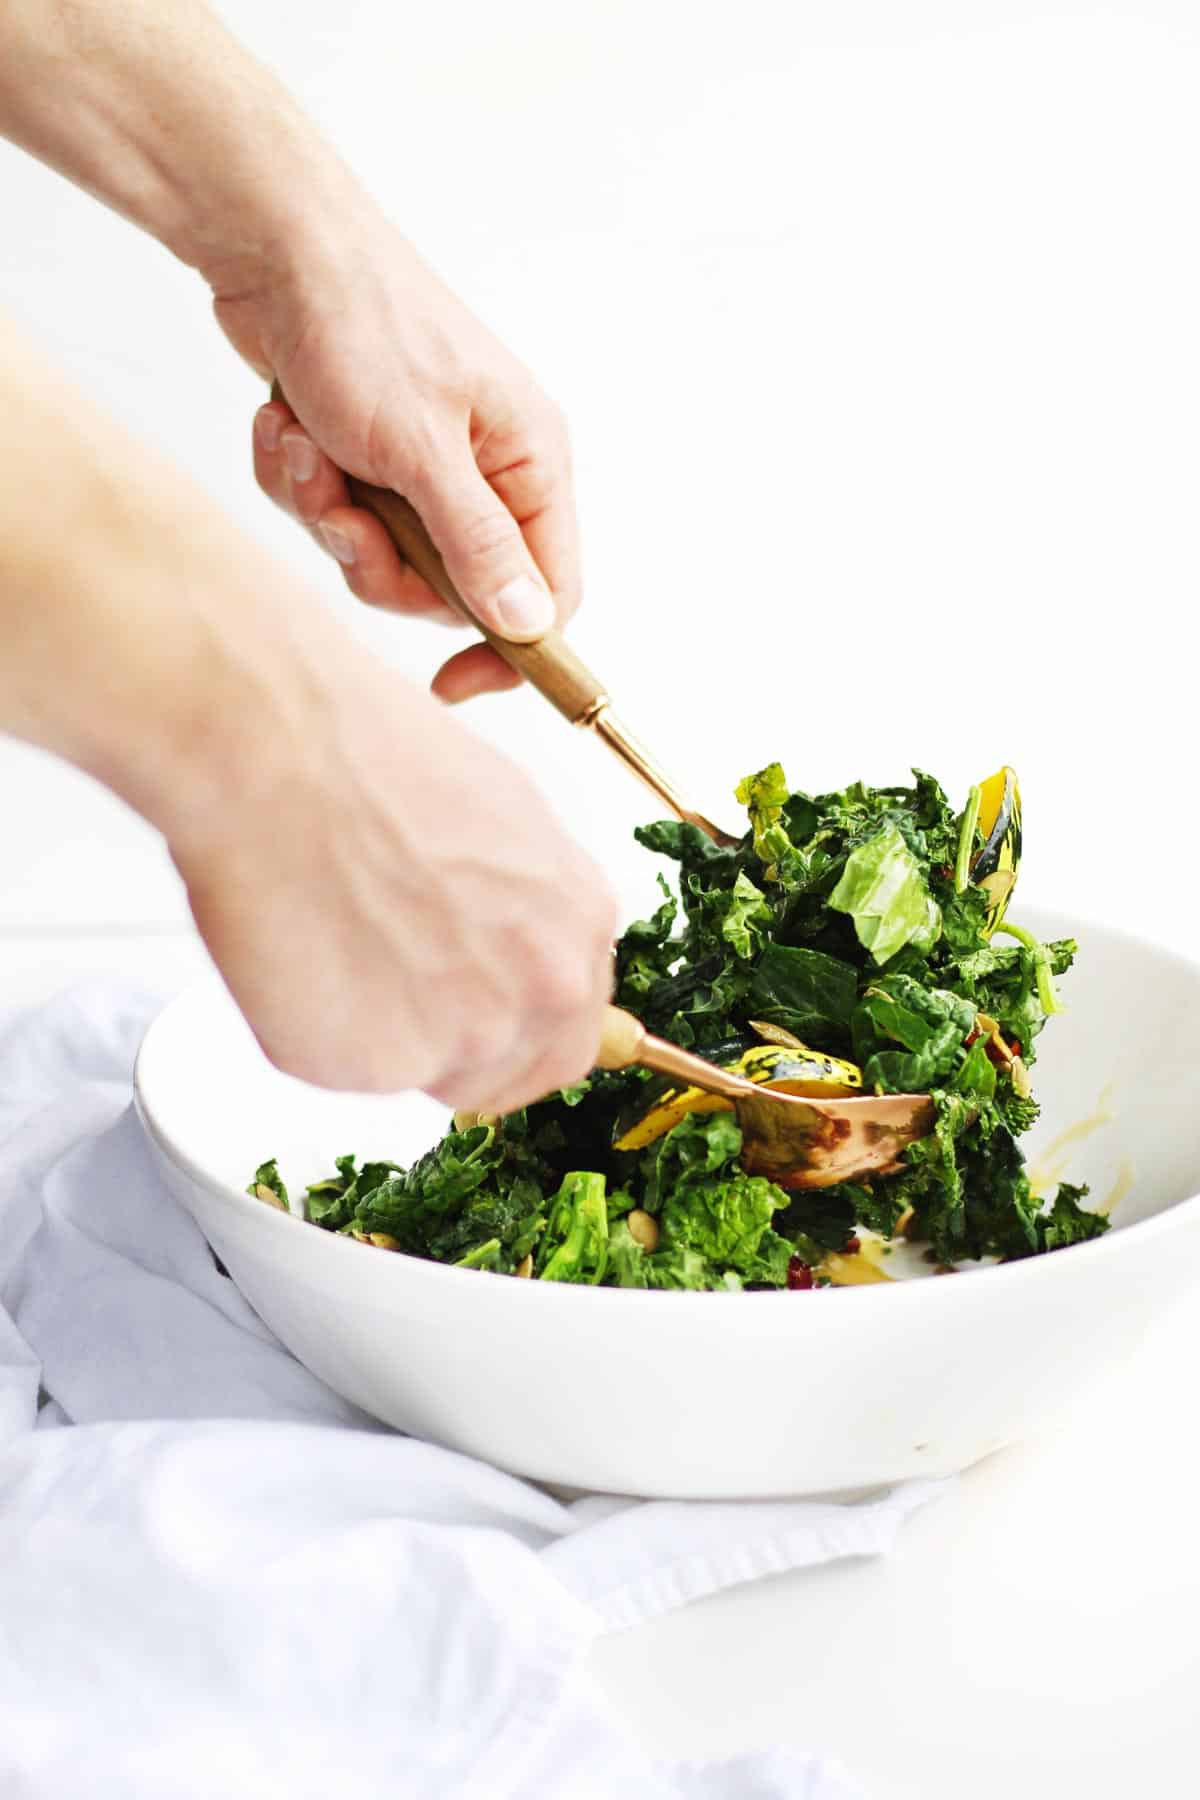 Tossing kale salad